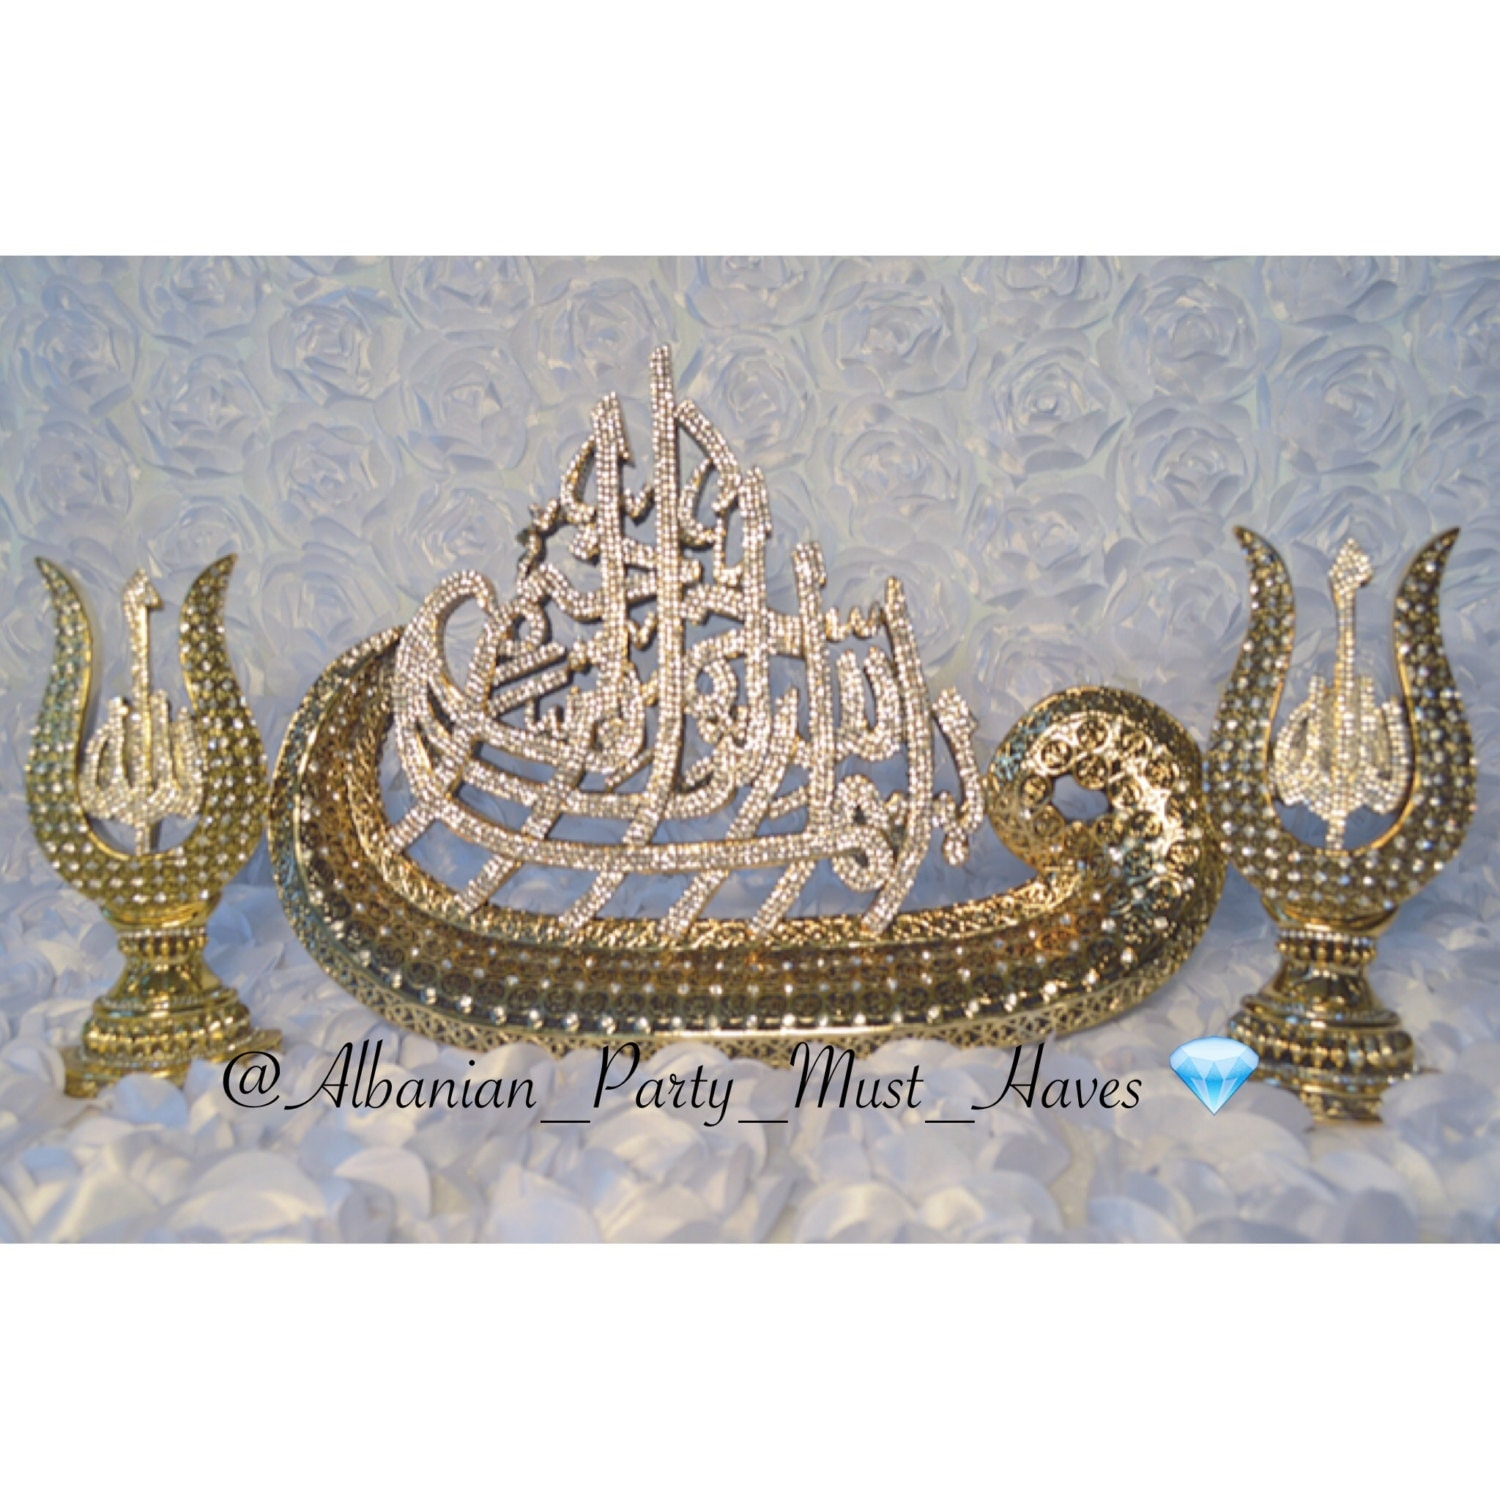 crystallized islamic decor set bismillah with 99 names of